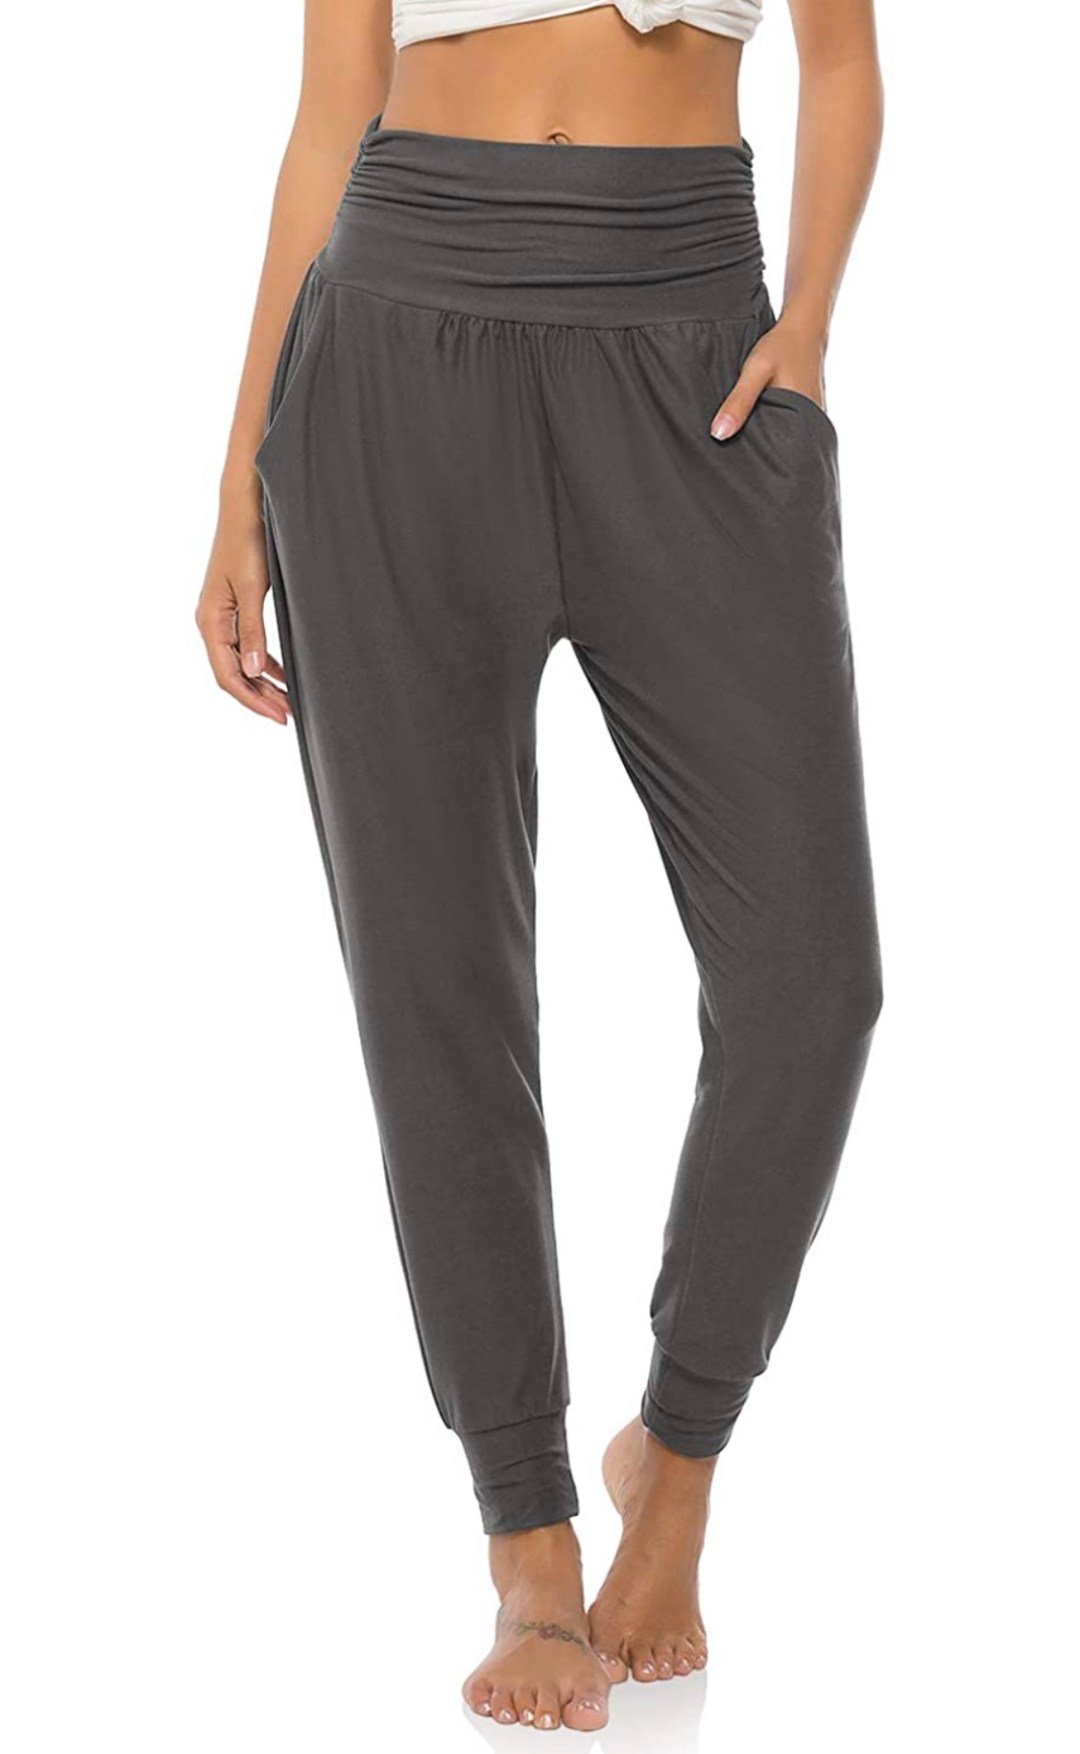 Women's Yoga Sweatpants - Loose Workout Joggers